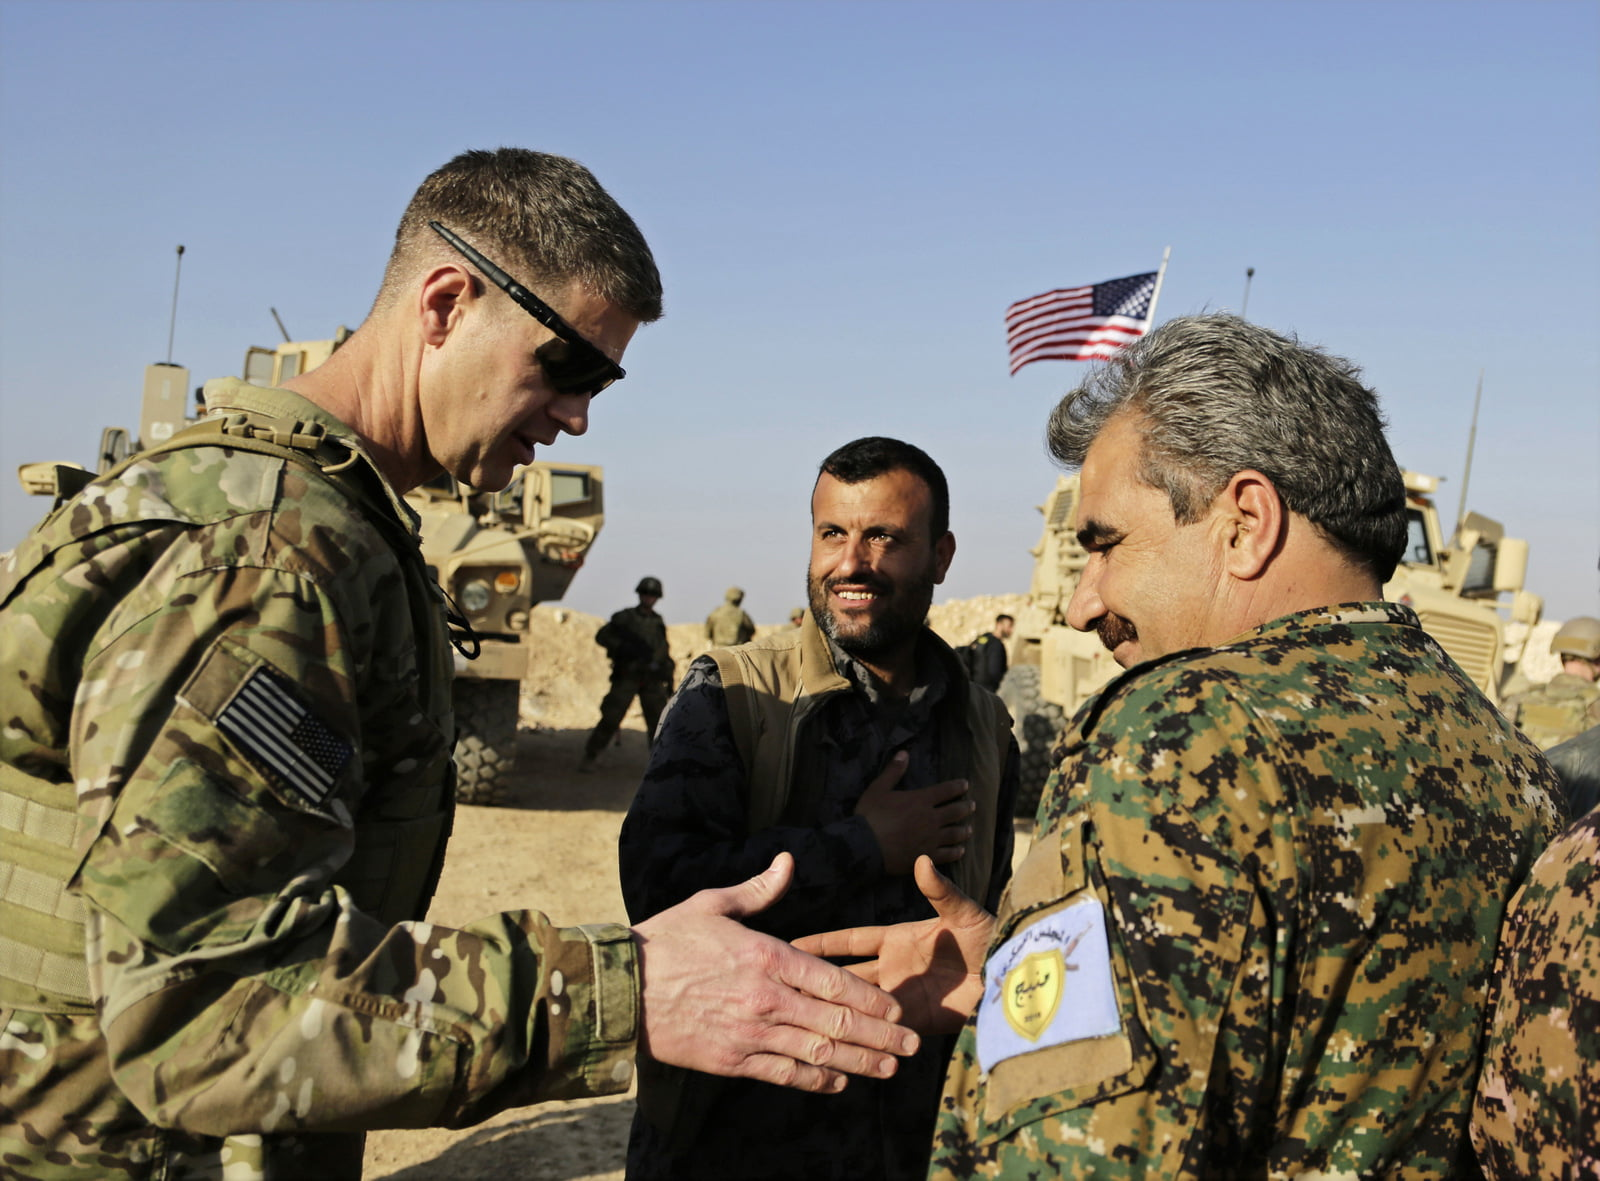 U.S. Army Maj. Gen. Jamie Jarrard left, greets Manbij Military Council commander Muhammed Abu Adeel near the town of Manbij, in northern Syria, Feb. 7, 2018. (AP/Susannah George)